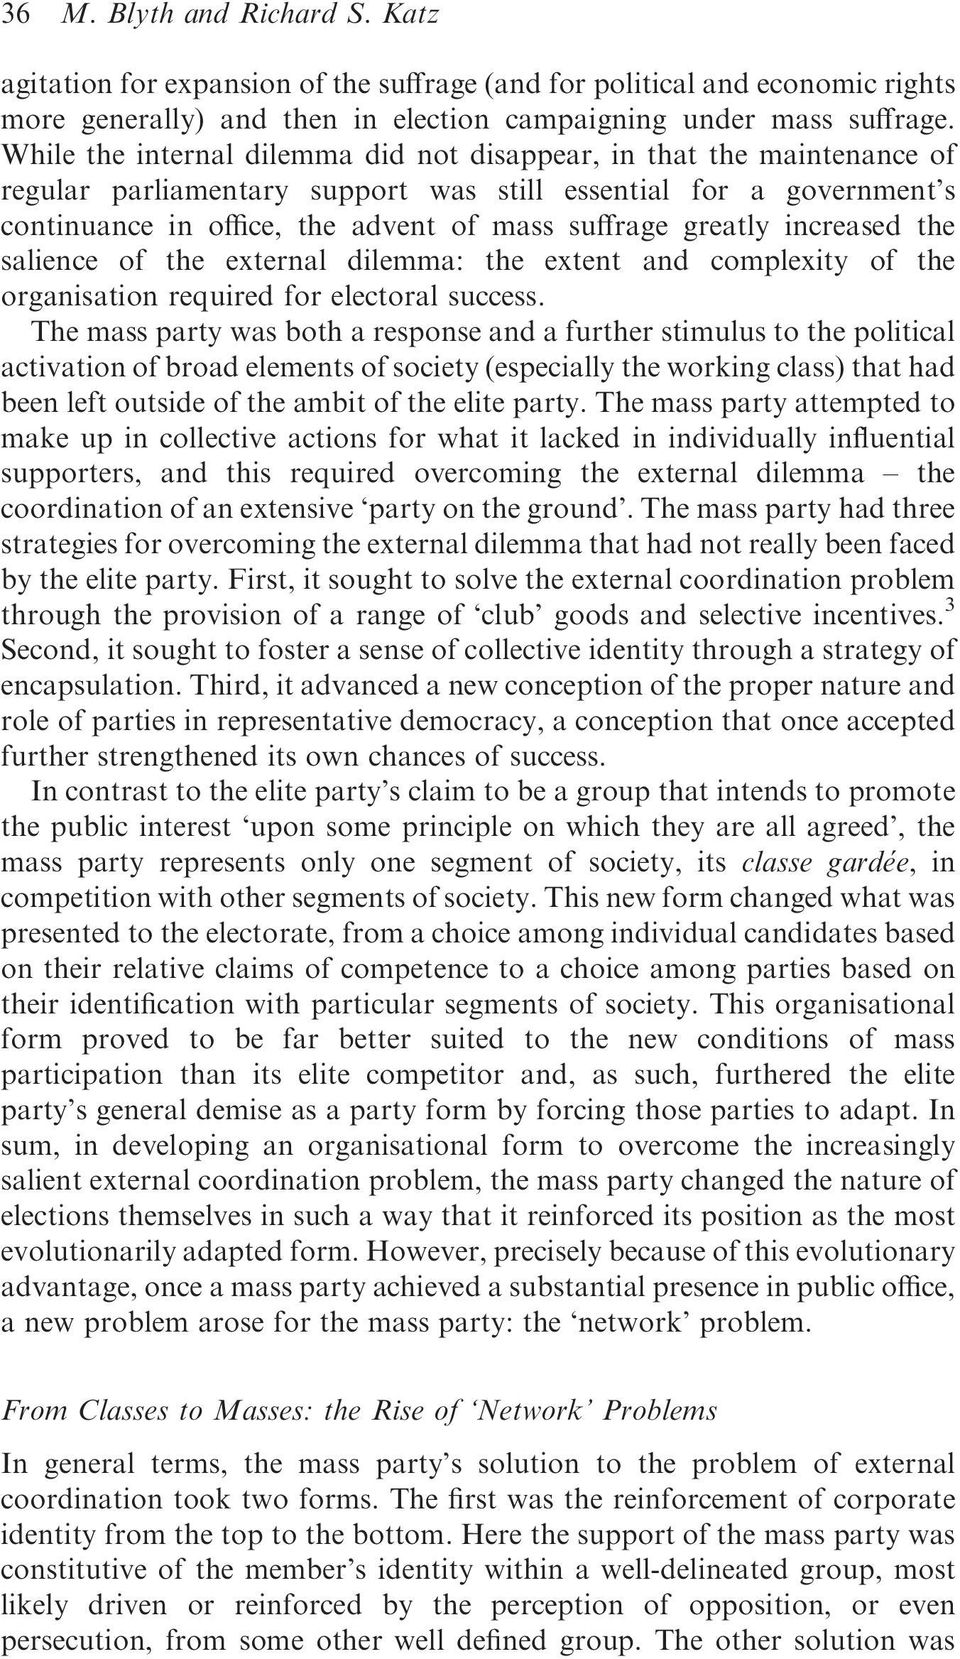 greatly increased the salience of the external dilemma: the extent and complexity of the organisation required for electoral success.